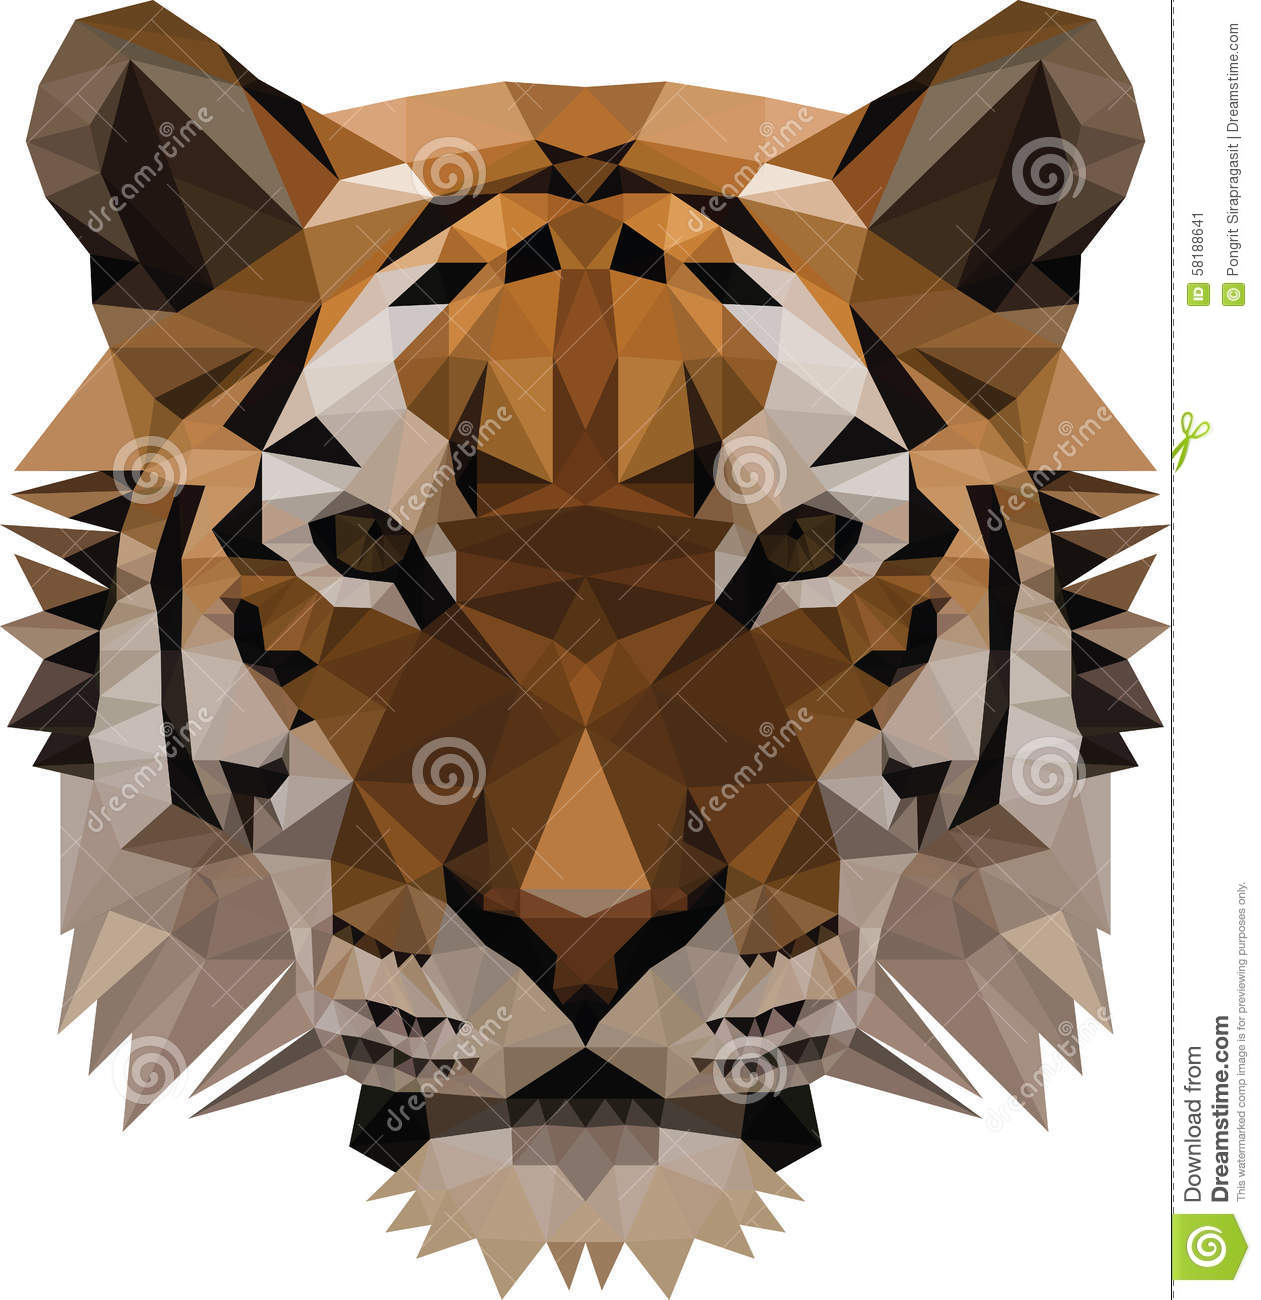 united states map outline with Stock Illustration Low Poly Tiger Illustration Face Animal Image58188641 on File Map of Michigan highlighting Schoolcraft County also File Laos Blank Map moreover Vu in addition File Map of Tennessee highlighting Union County also File map of ohio highlighting pike county.